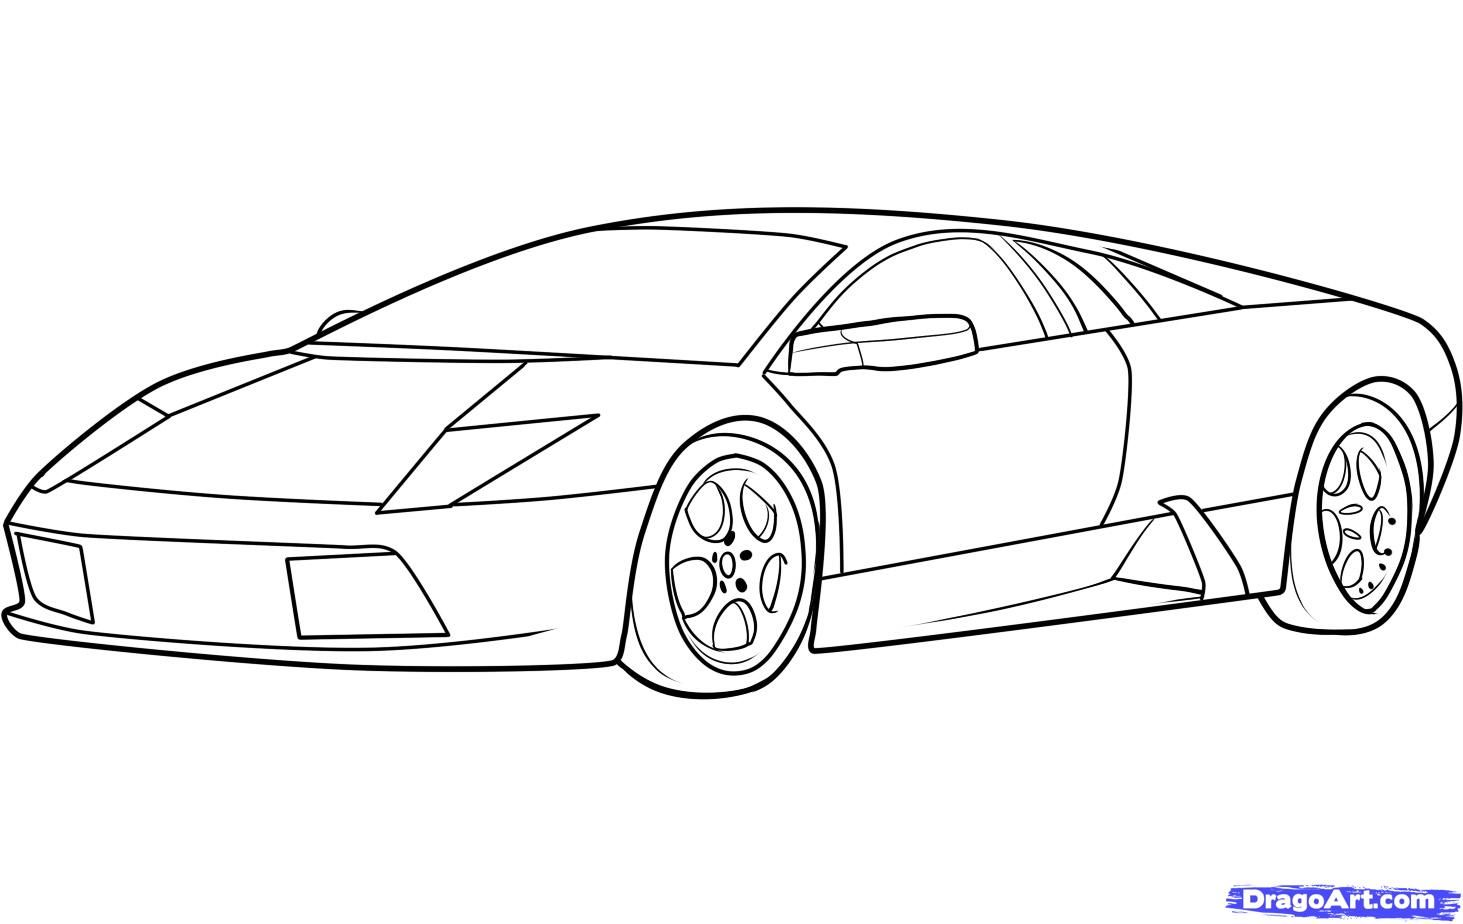 how to draw lamborghini drawings l pinterest lamborghini drawings and drawing sketches